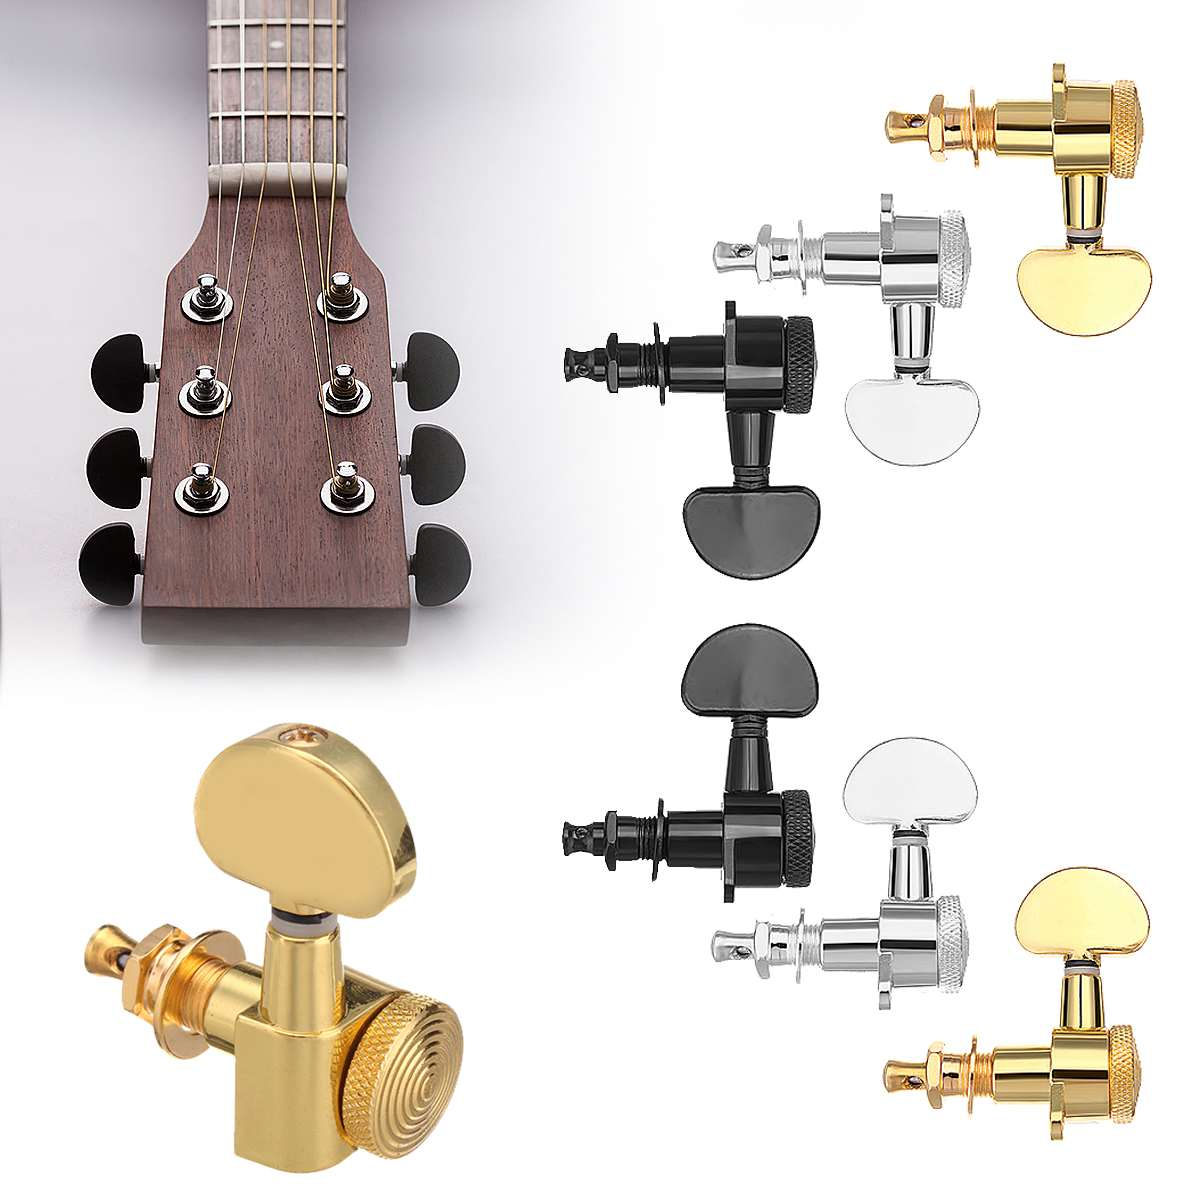 6pcs guitar tuners machine heads 3r 3l auto locking tuners guitar parts replacement black gold. Black Bedroom Furniture Sets. Home Design Ideas